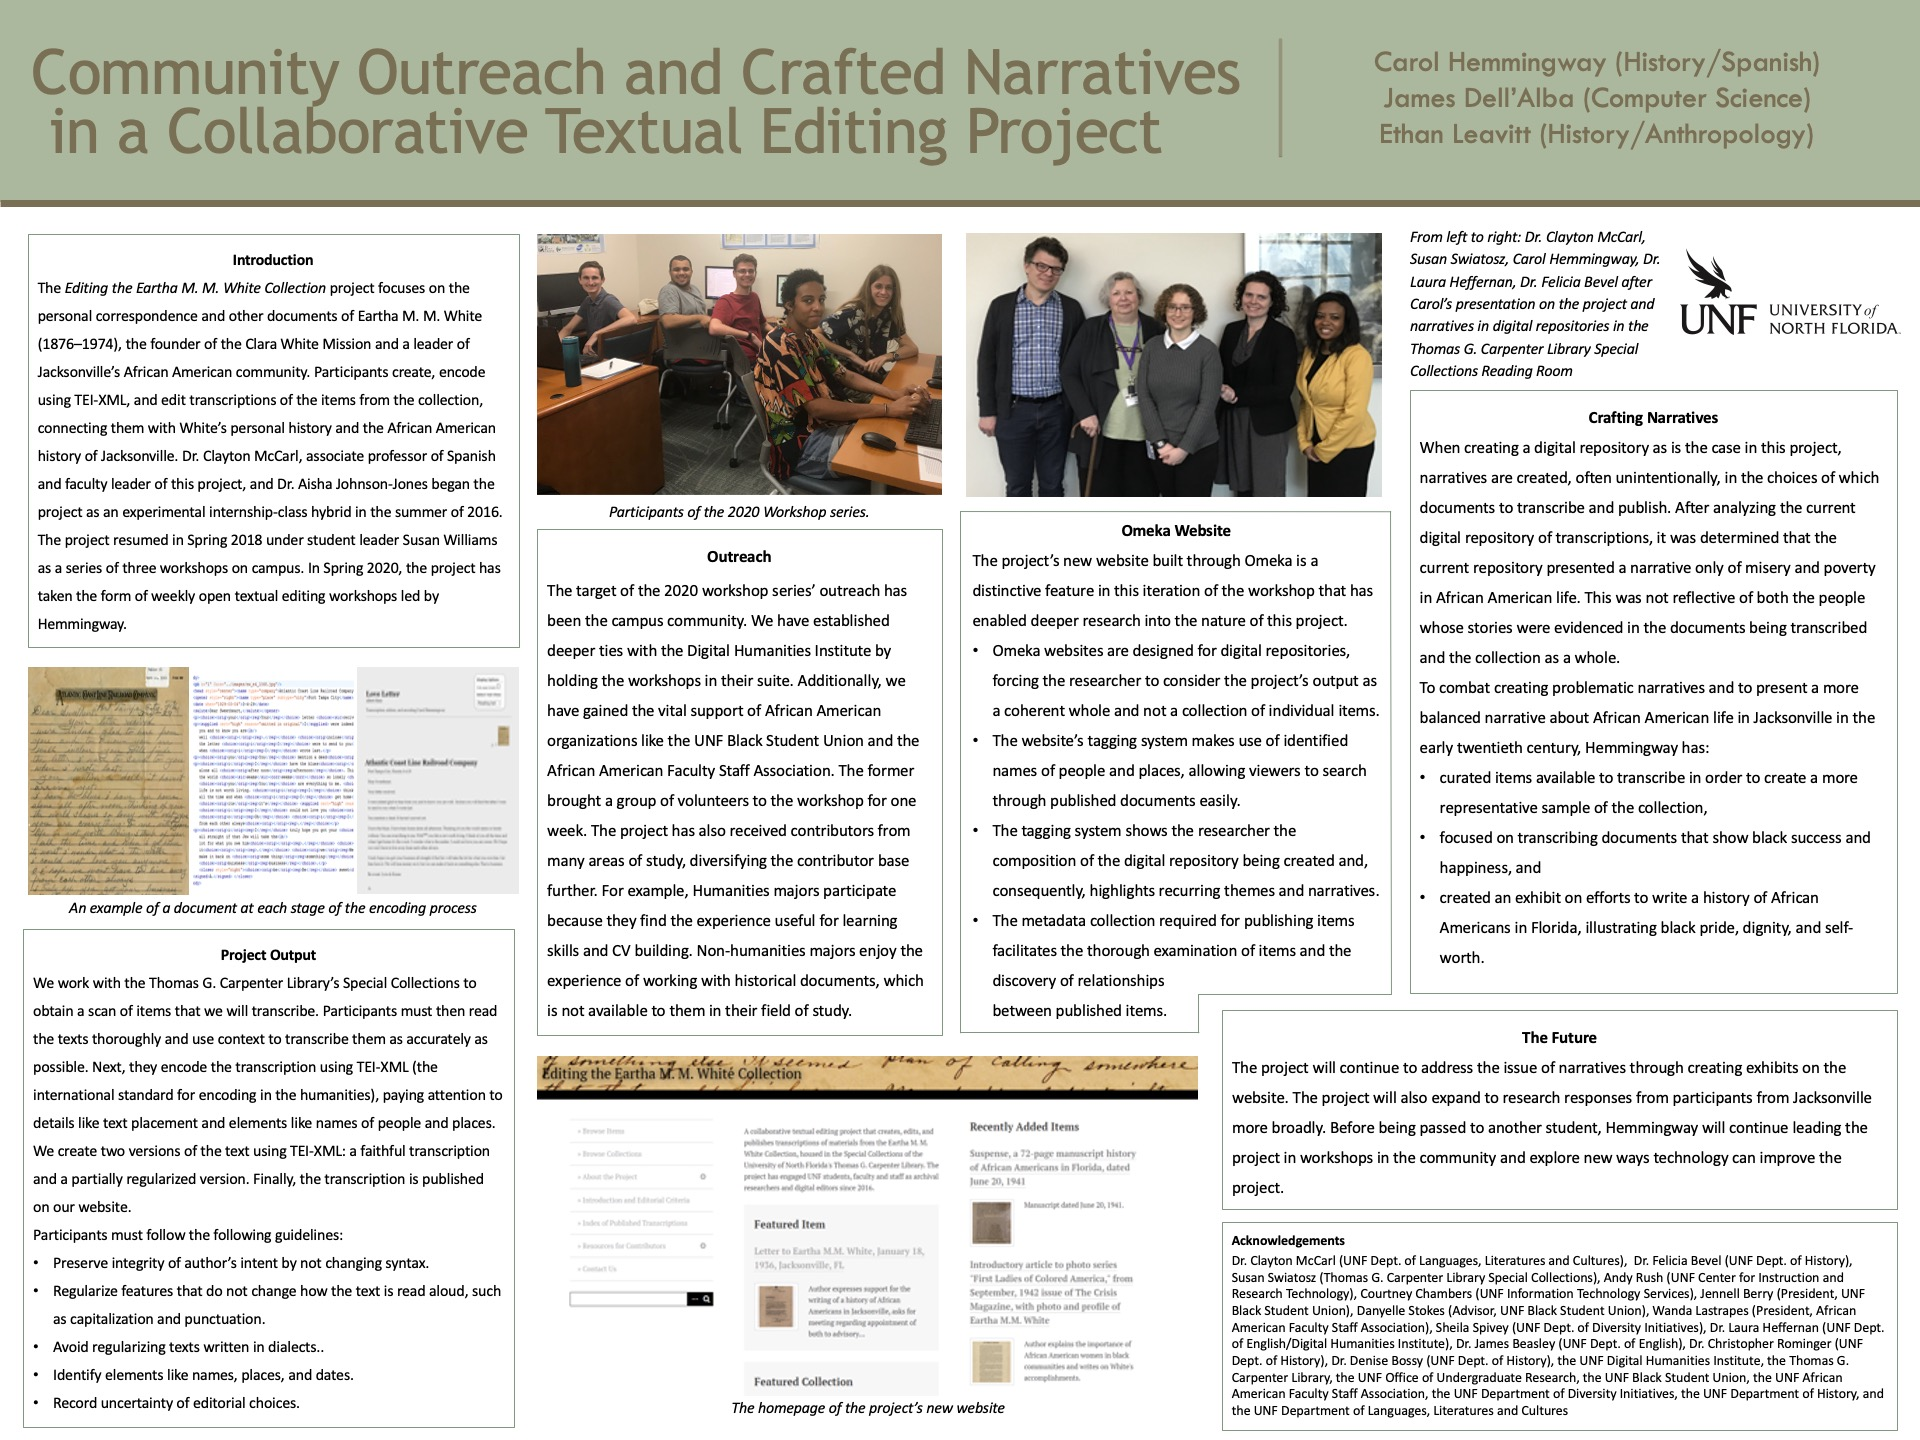 Community Outreach and Crafted Narratives in a Collaborative Textual Editing Project poster